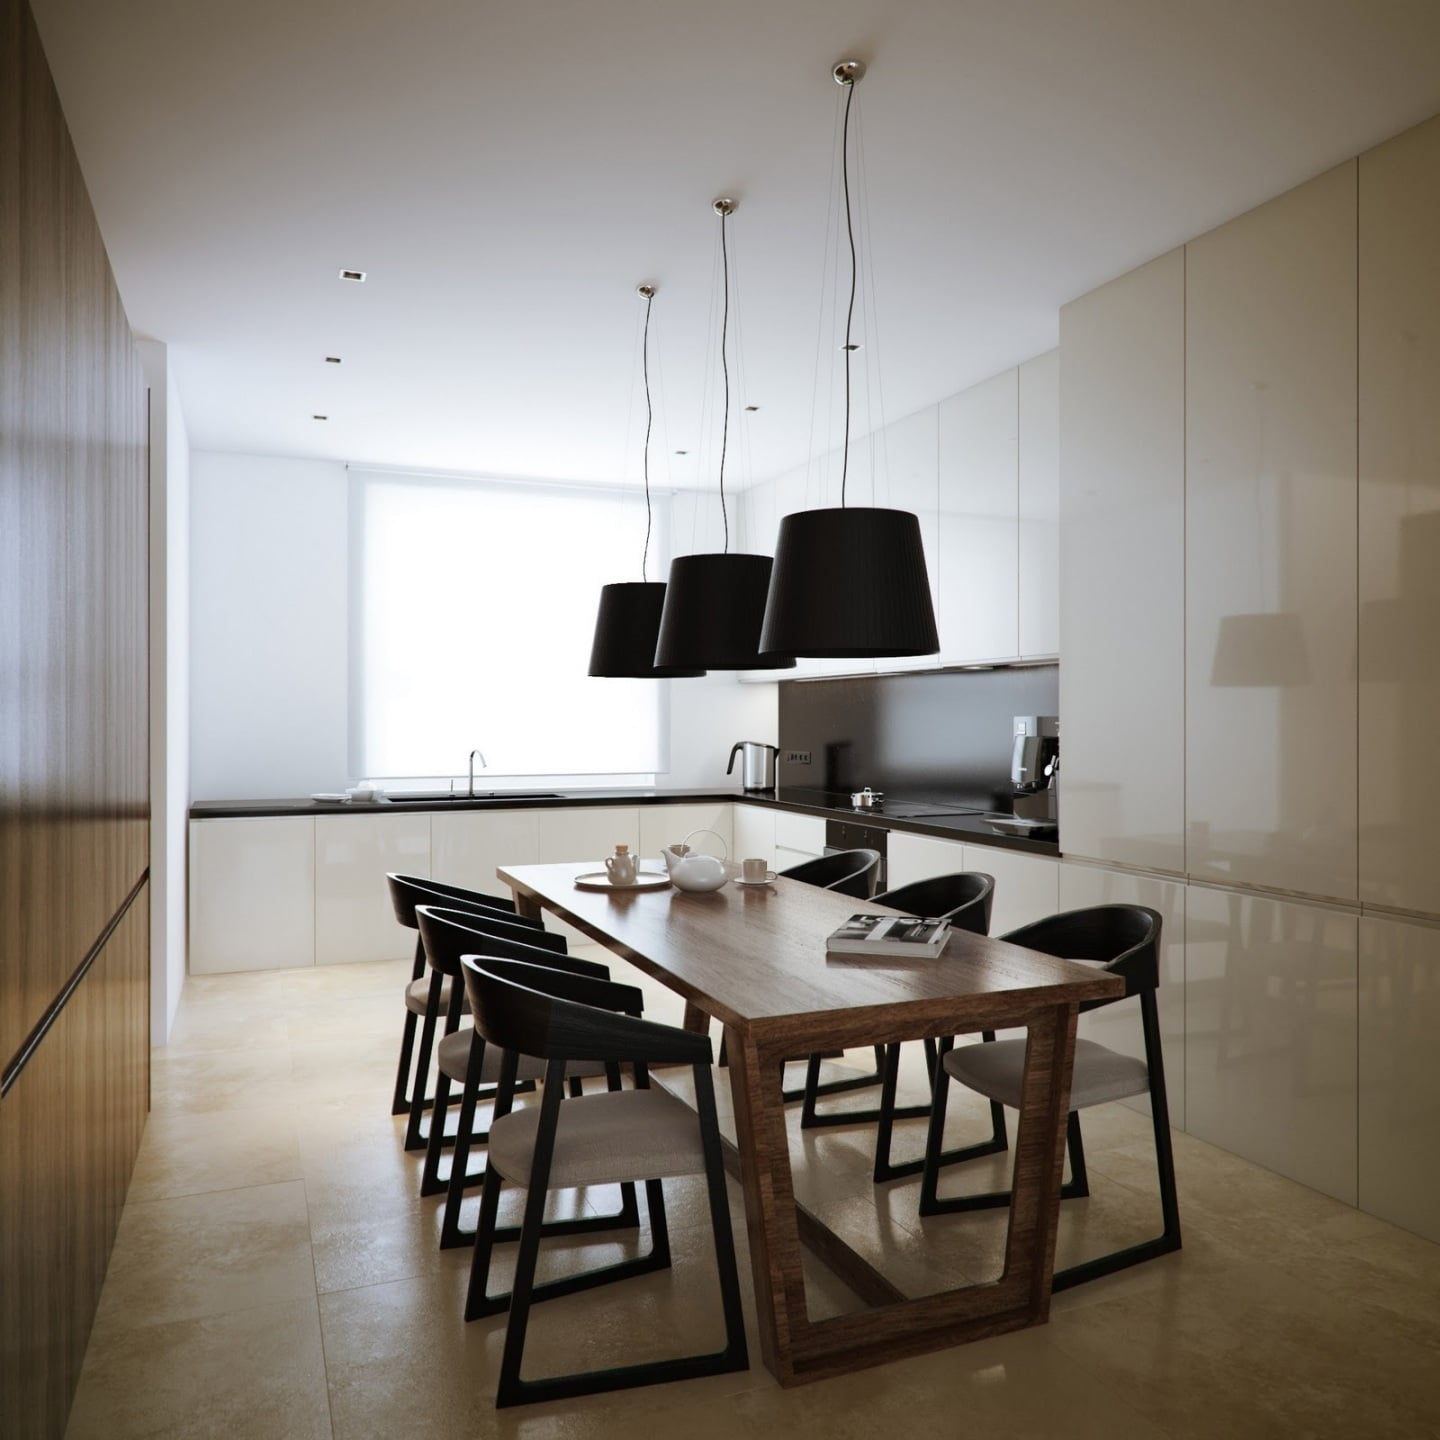 fascinating-luxury-minimalist-loft-designs-in-black-and-white-with-white-walnut-beautiful-dining-room-exquisite-kitchen-area-di.jpg